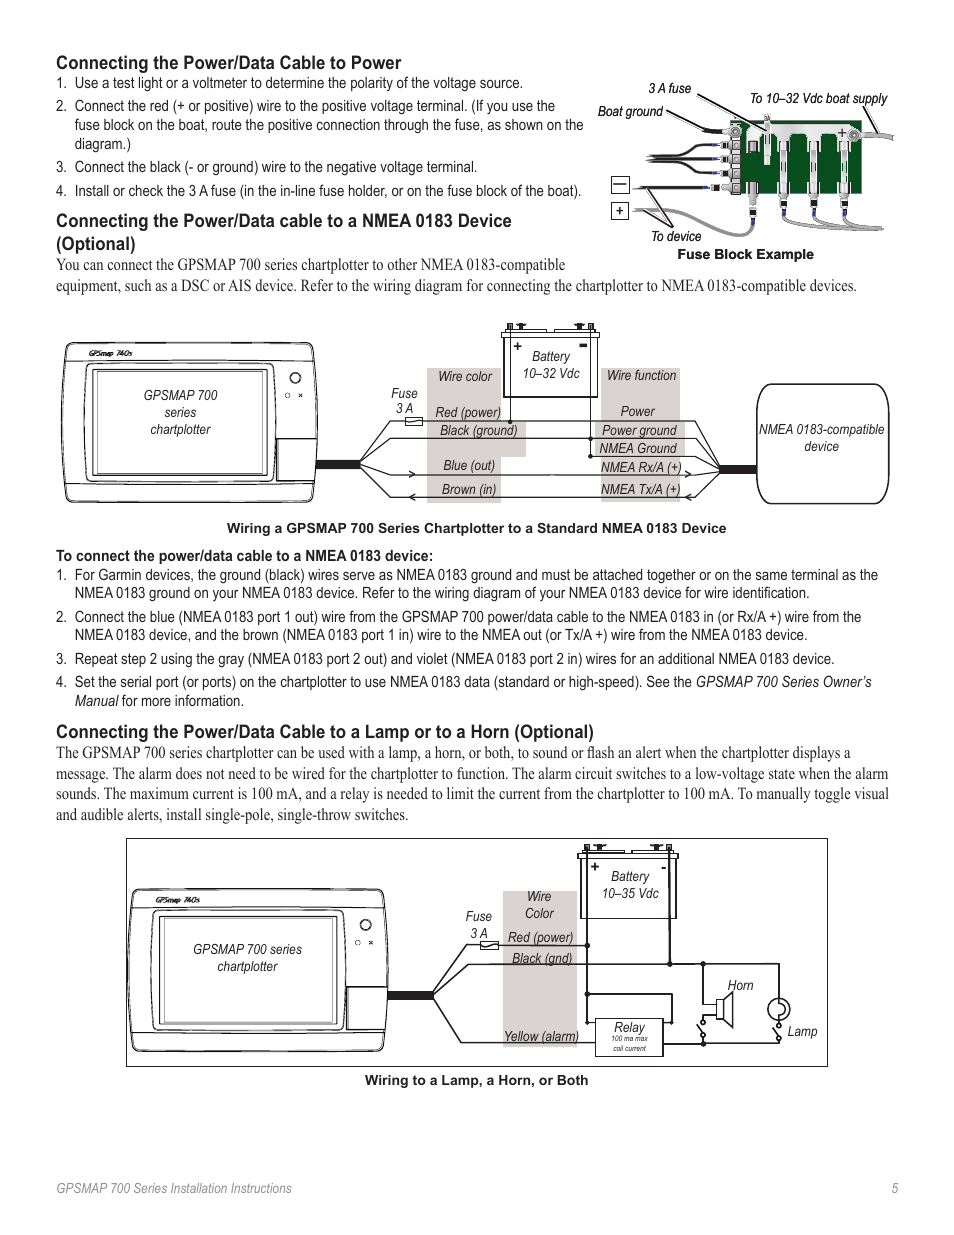 Connecting the power/data cable to power | Garmin GPSMAP 740s User Manual |  Page 5 / 10